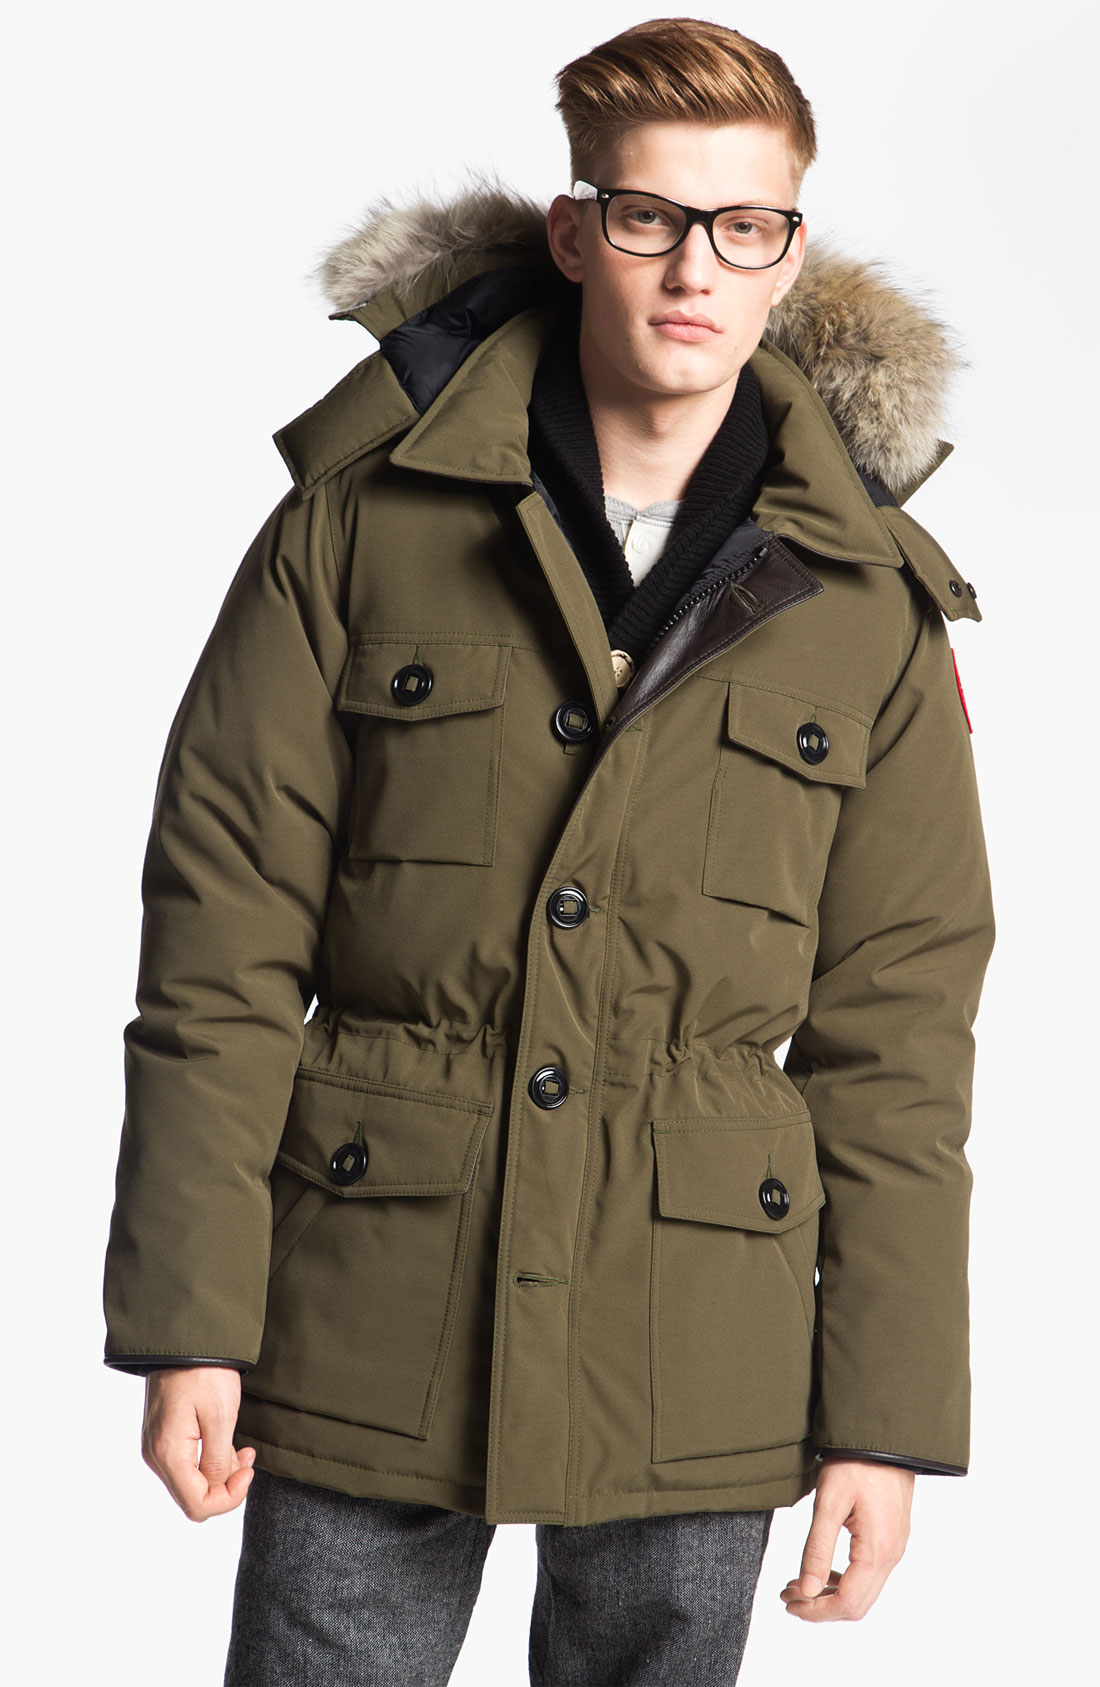 Shop the best selection of men's jackets at distrib-wjmx2fn9.ga, where you'll find premium outdoor gear and clothing and experts to guide you through selection.